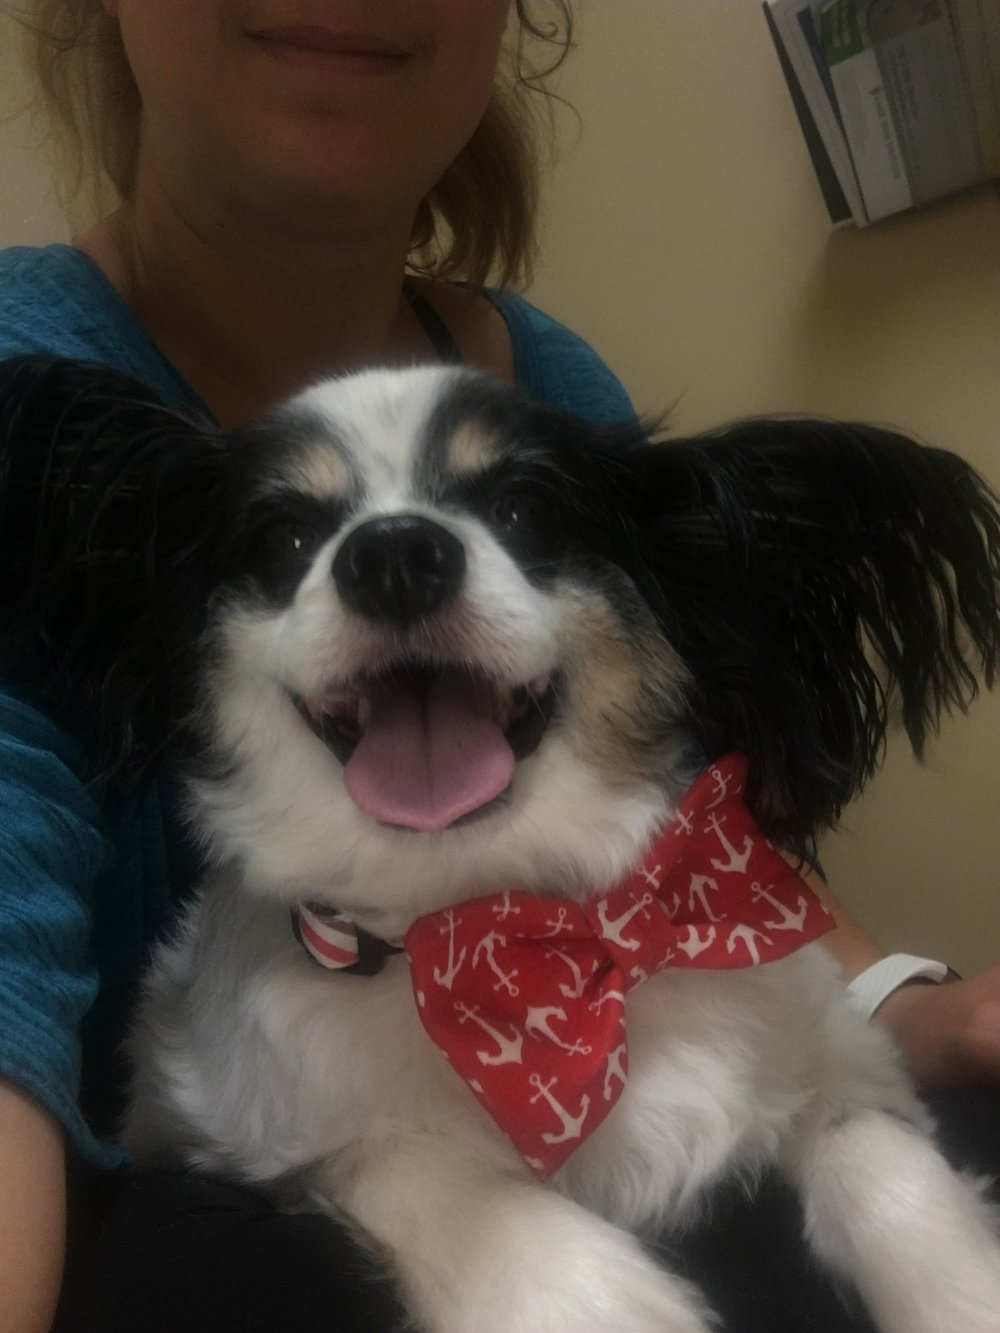 All smiles at the vet - nothing keeps this dog from his adoring public.